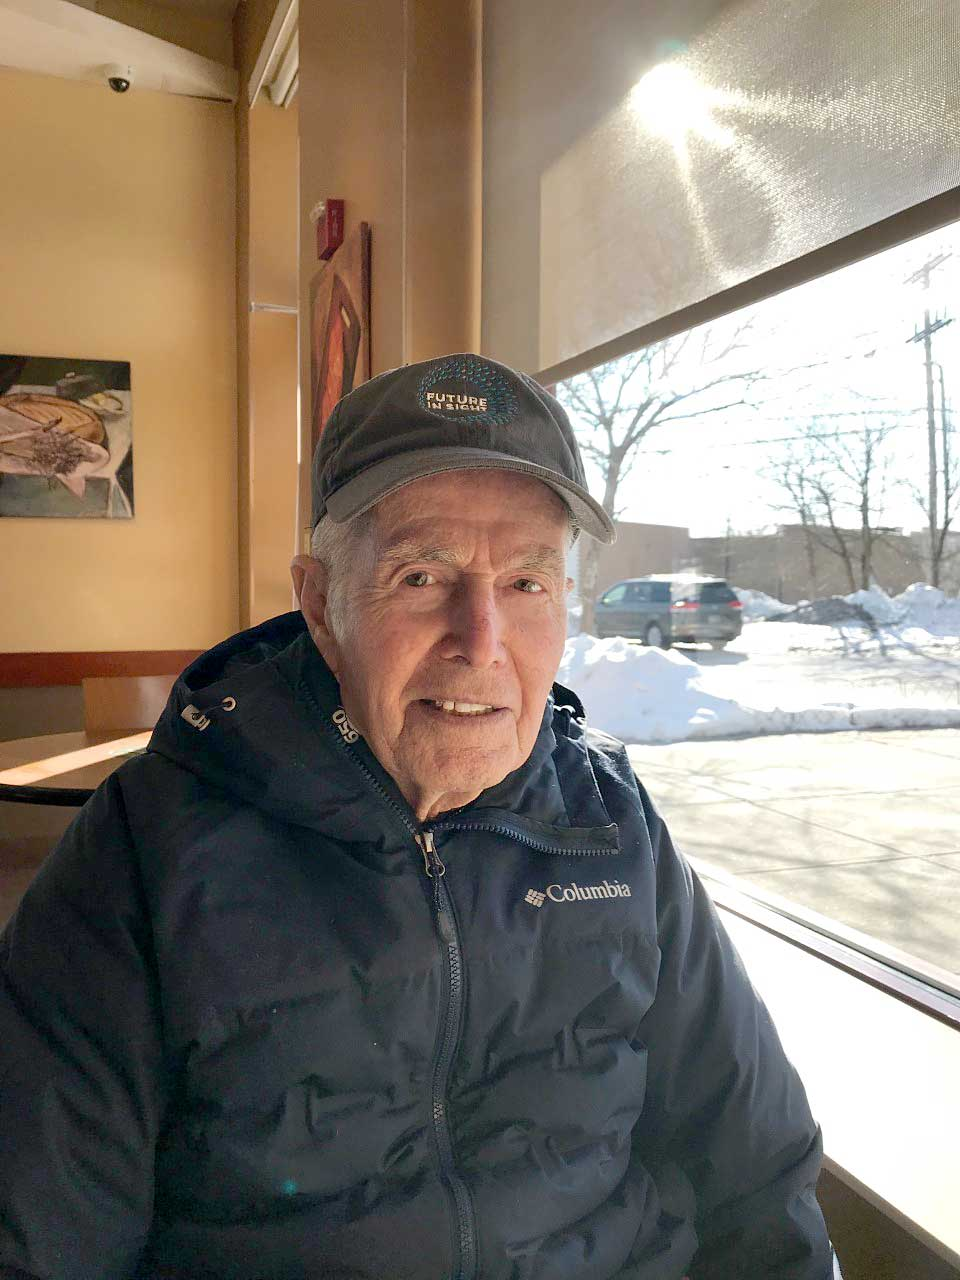 Cliff Smith has been a volunteer for Future In Sight for many years